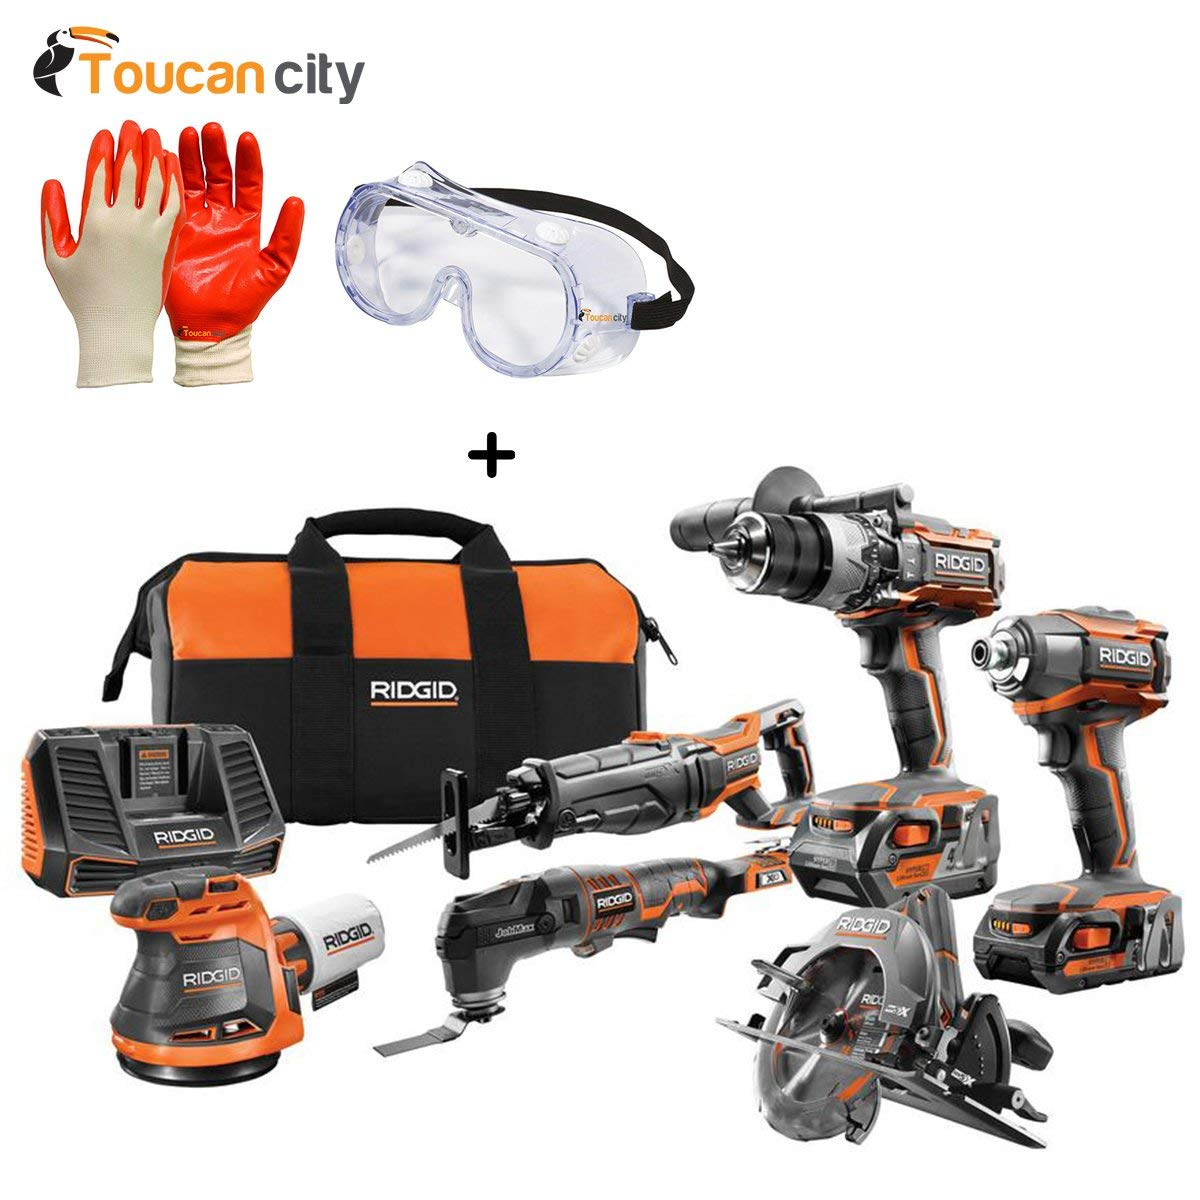 RIDGID 18-Volt Gen5X Cordless 6 Piece Combo Kit with (1) 4.0 Ah Battery and (1) 2.0 Ah Battery, Charger, Bag R9625N and Toucan City Nitrile Dip Gloves(5-Pack) with Safety Goggles